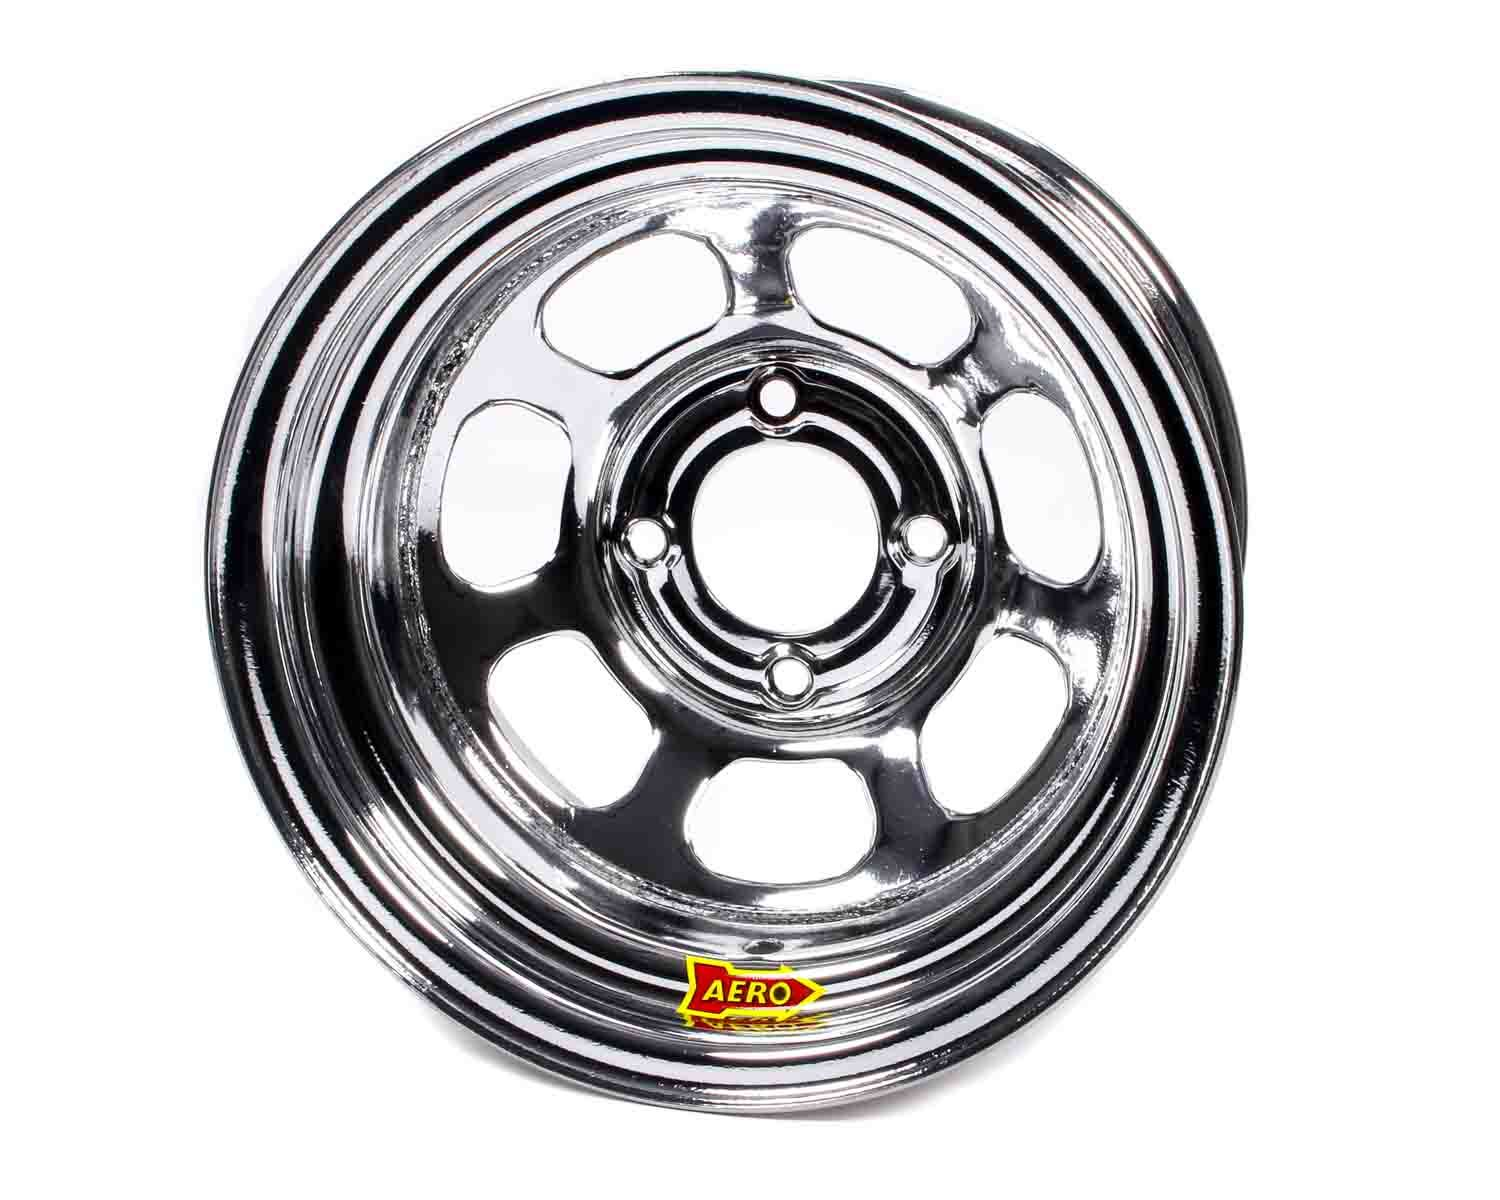 Aero Race 13x8 2in 4.25 Chrome  Wheel